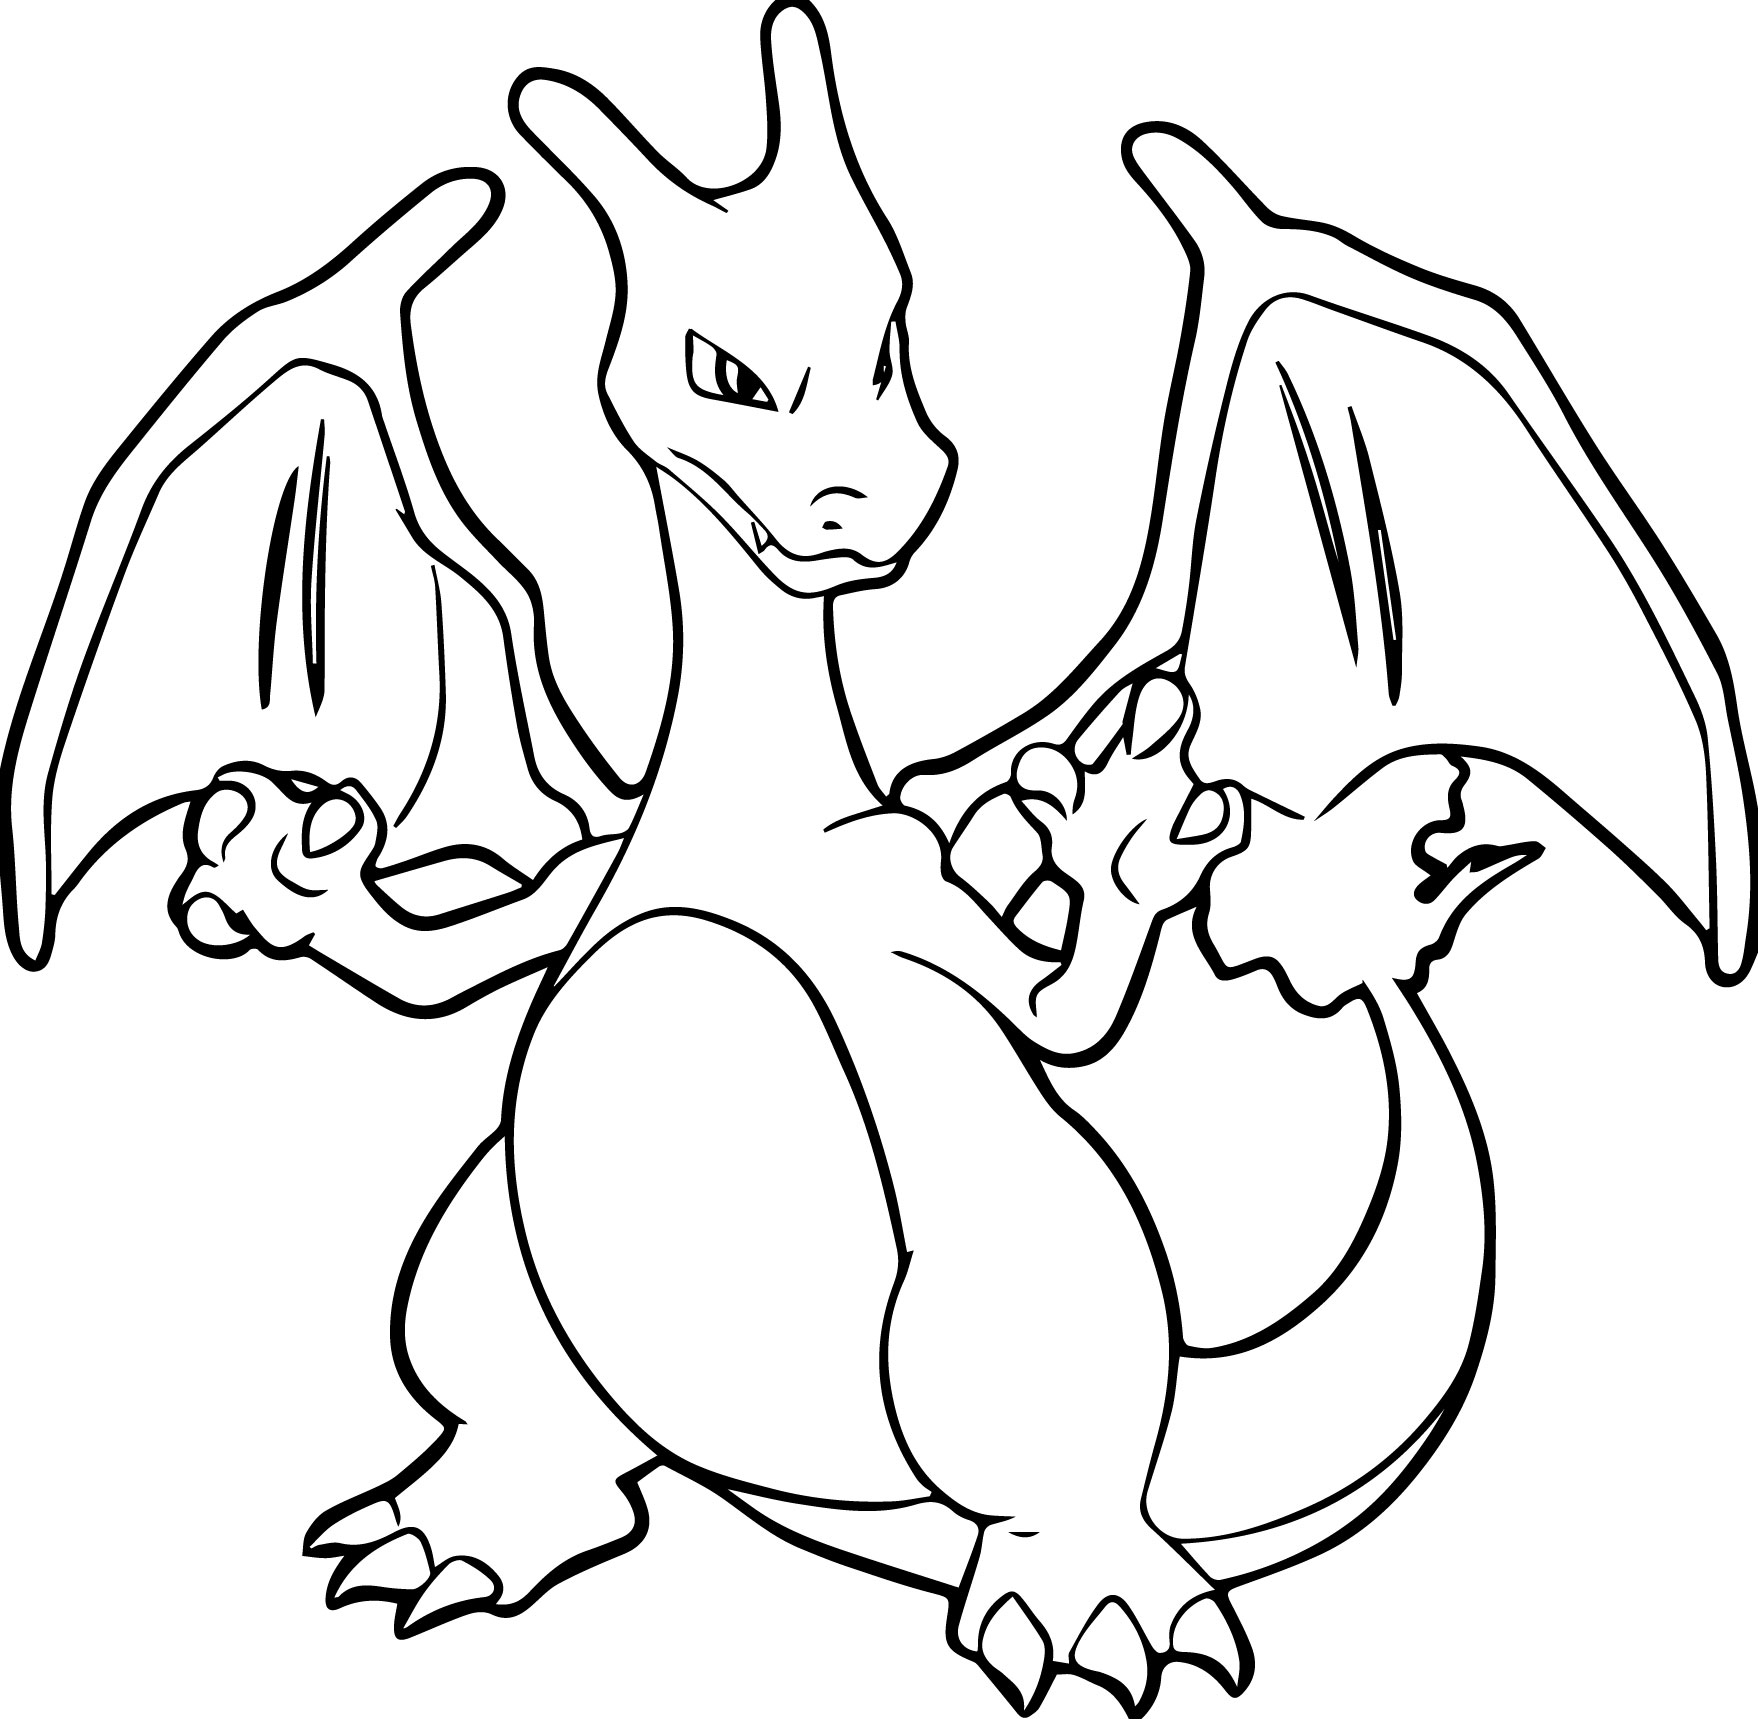 Charizard coloring pages to download